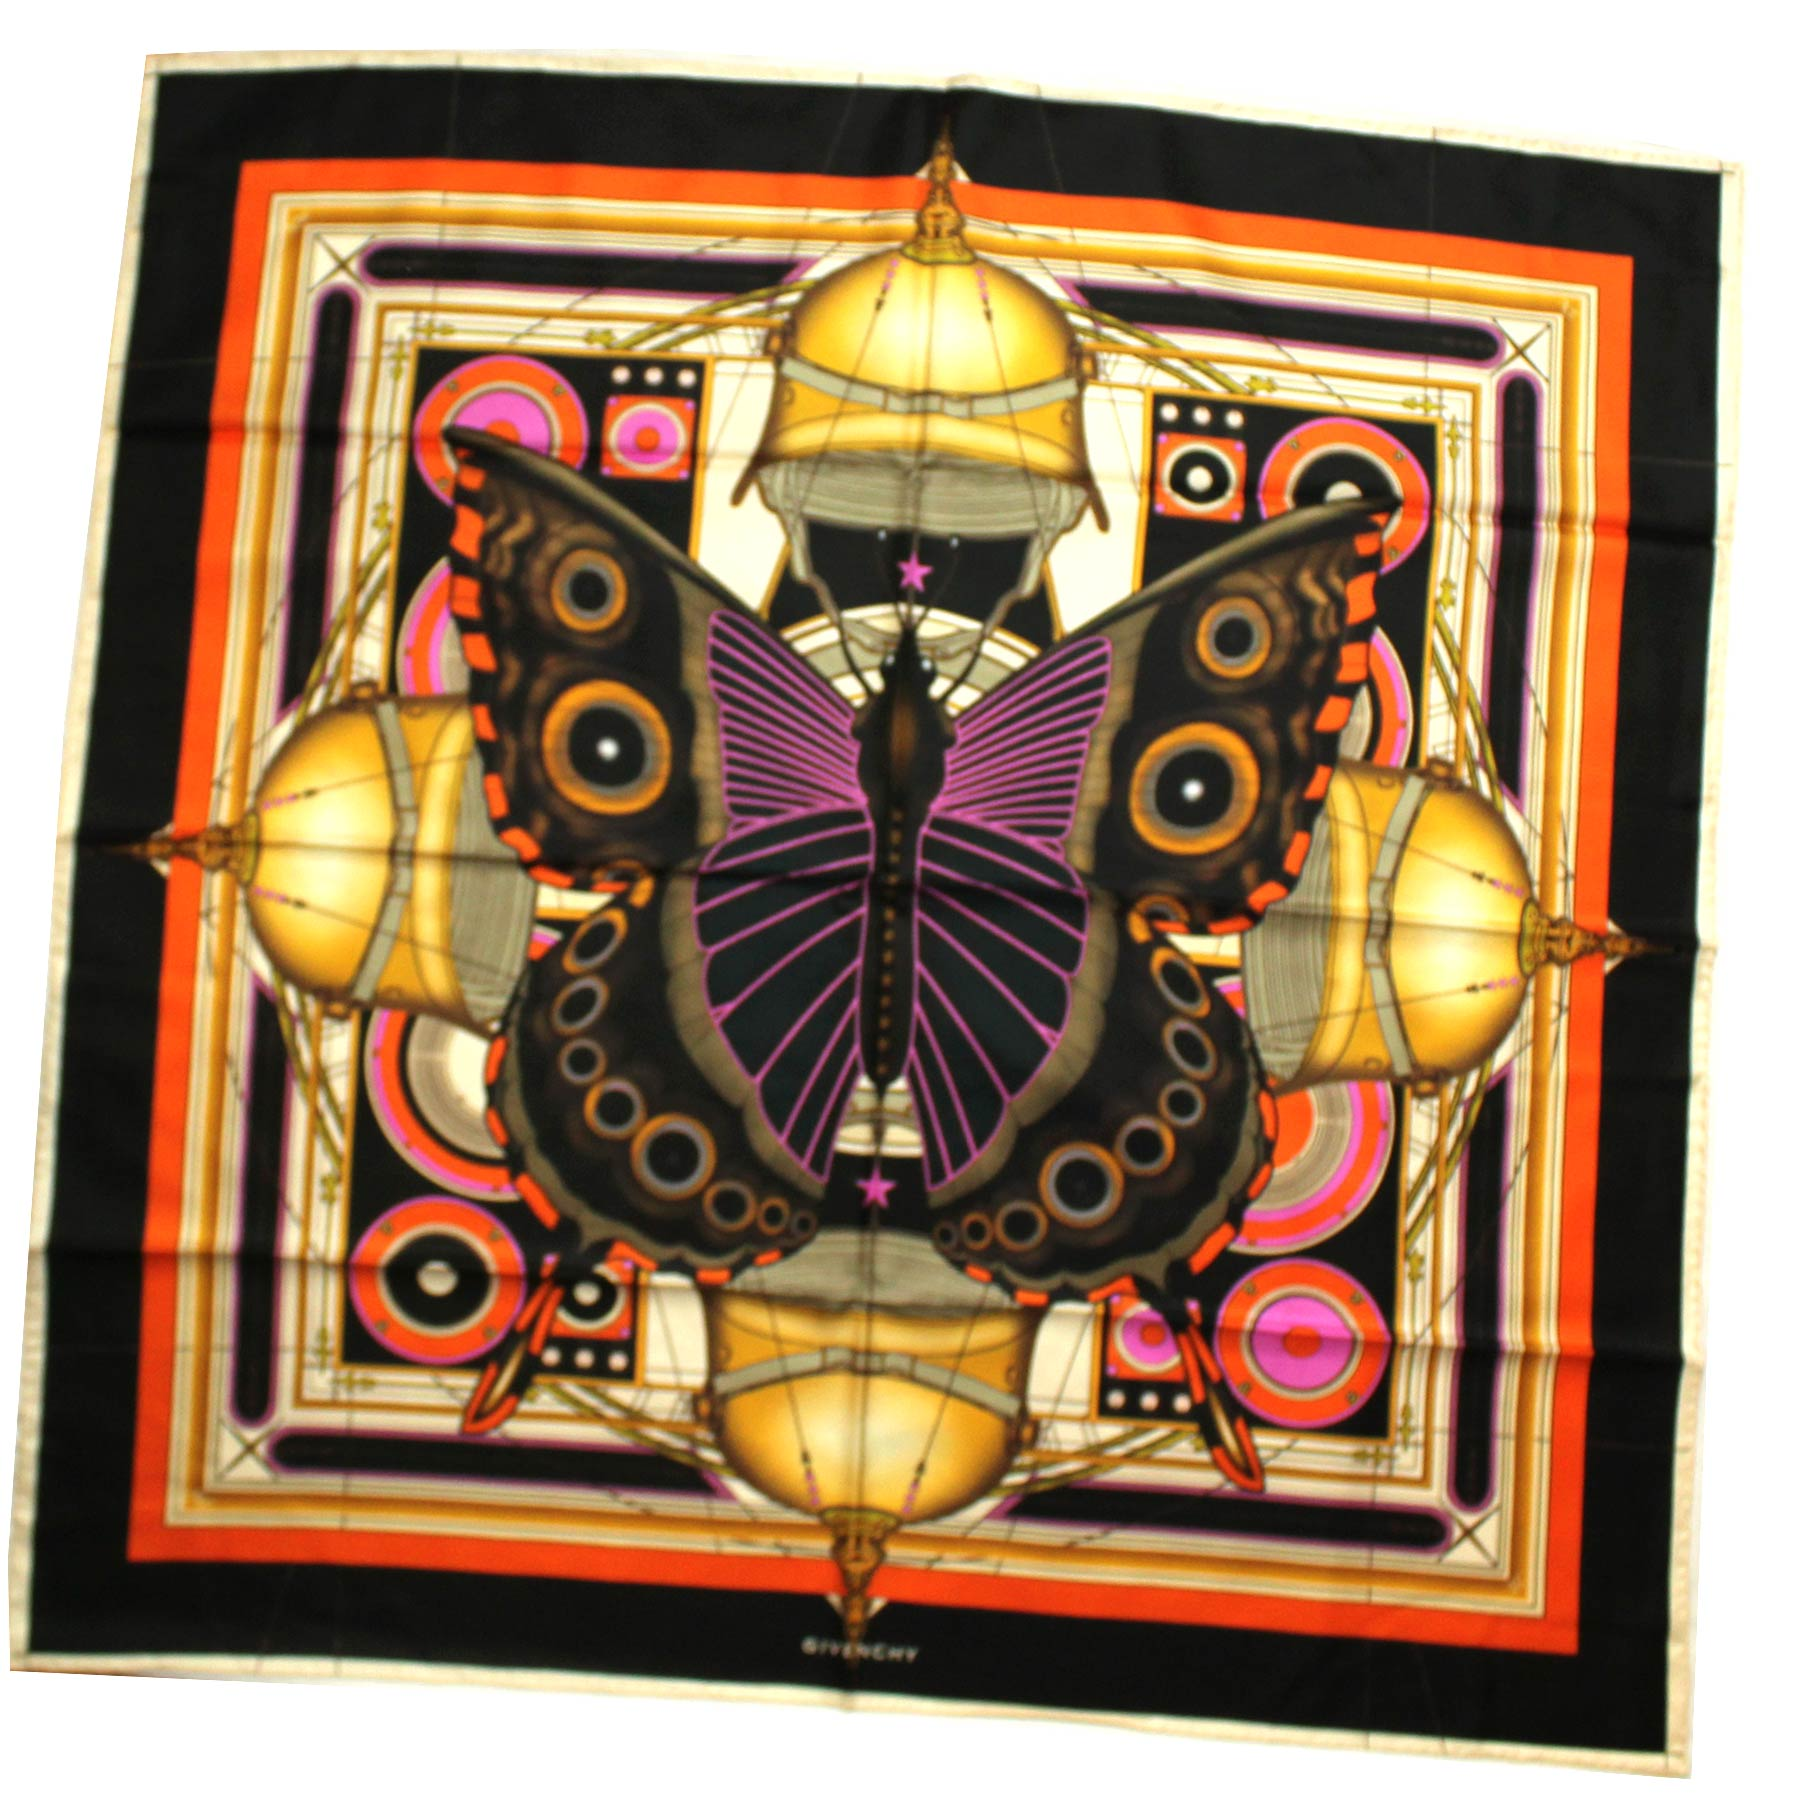 Givenchy Scarf Black Orange Gold Butterfly - Twill Silk Large Square Scarf